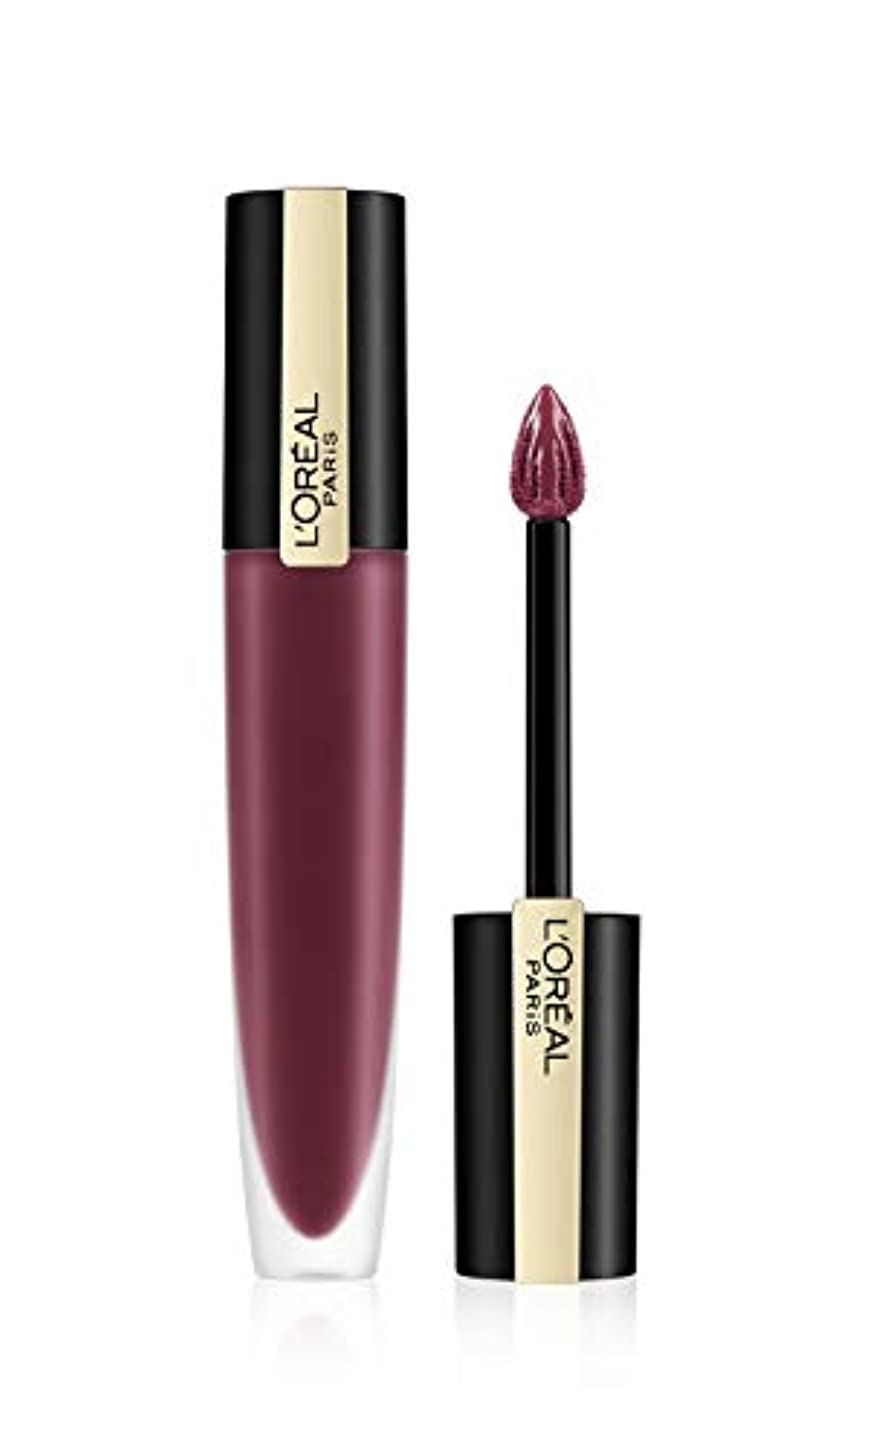 ミス応用犠牲L'Oreal Paris Rouge Signature Matte Liquid Lipstick,103 I Enjoy, 7g